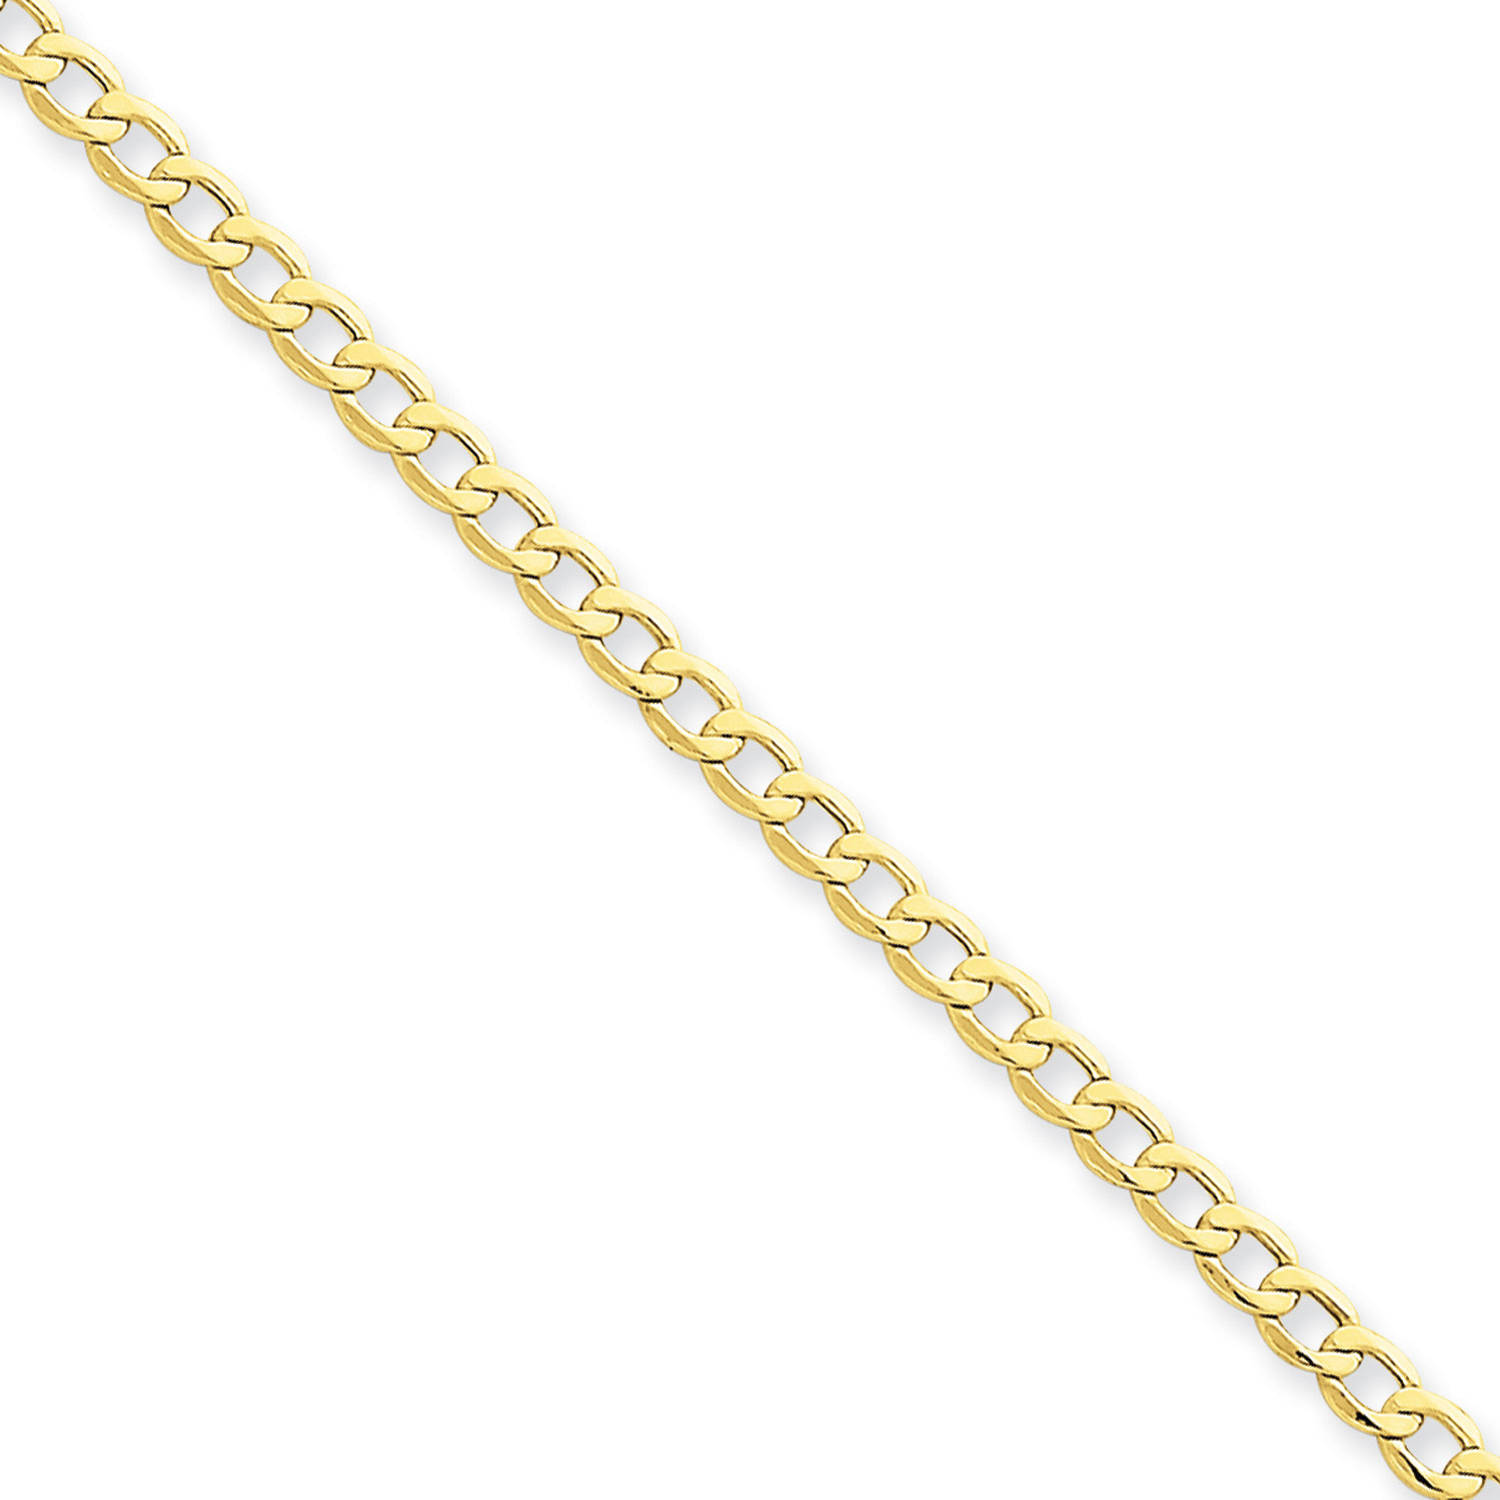 14kt Yellow Gold 3.35mm Semi-Solid Curb Link Chain by Generic